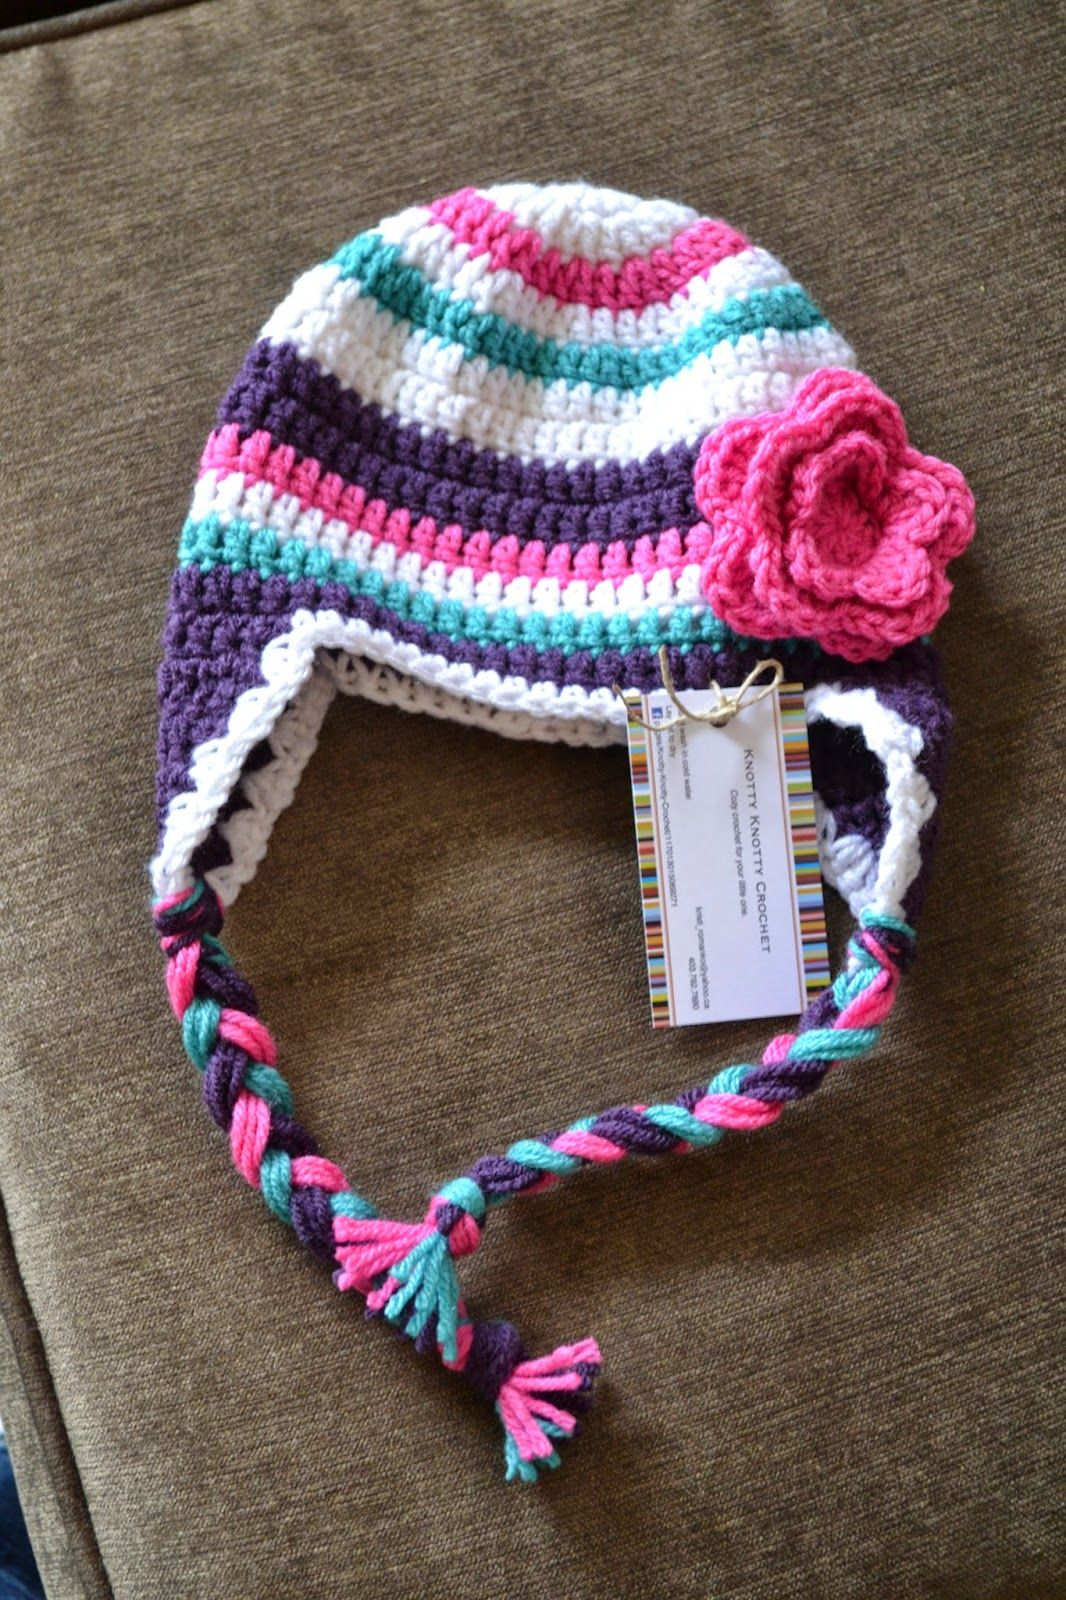 Knotty Knotty Crochet: super bulky striped hat FREE PATTERN! | Knit ...